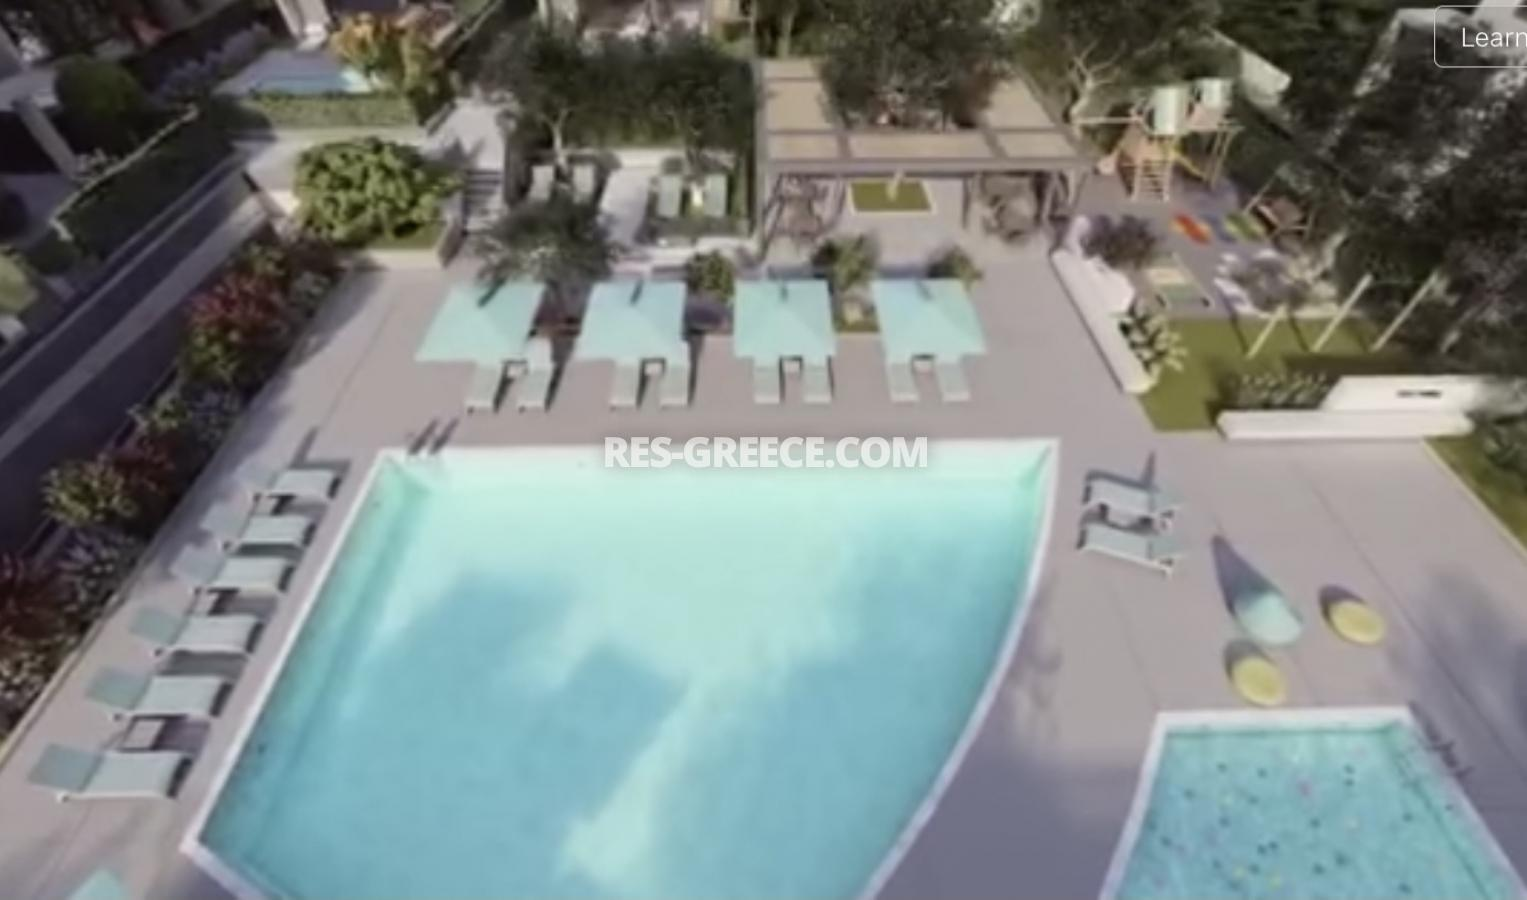 Anasa apartments, Halkidiki-Sithonia, Greece - apartments in a new complex with pool - Photo 8